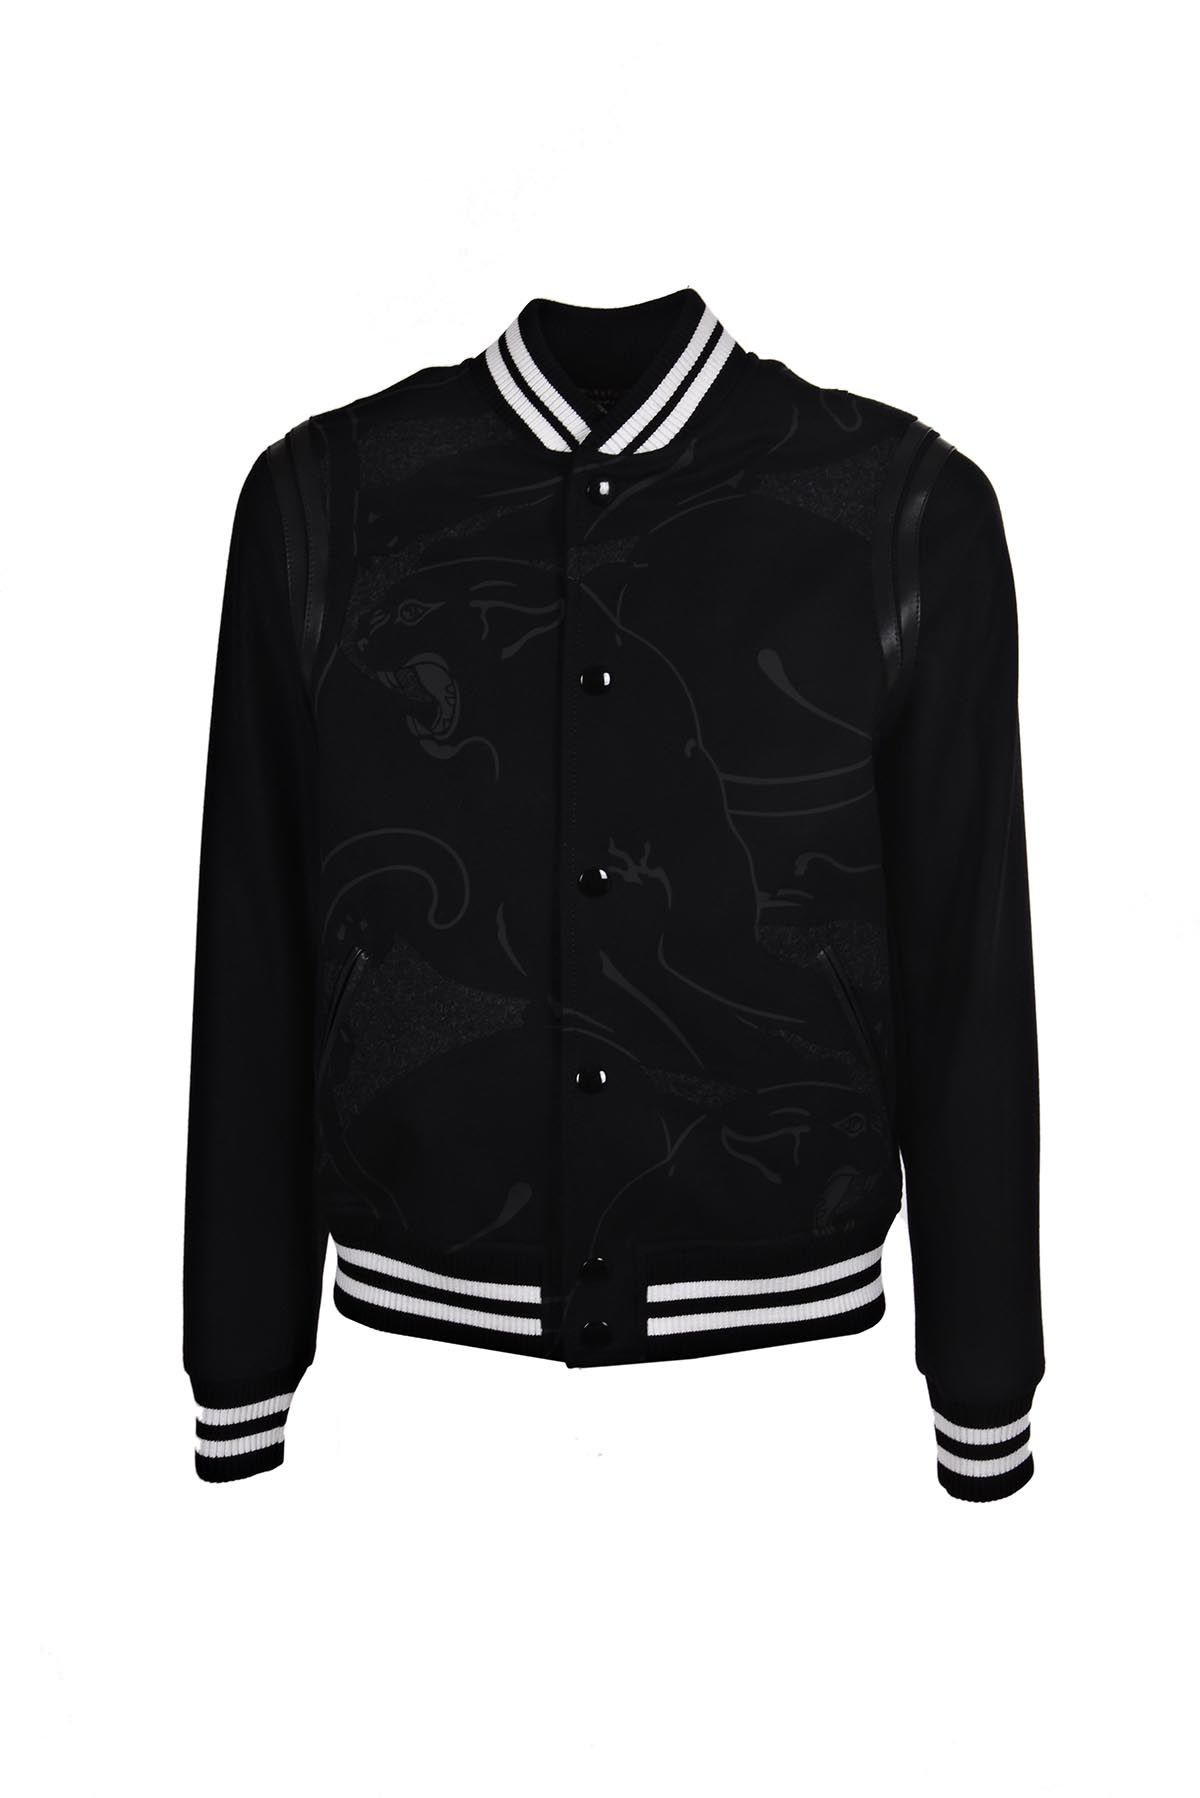 VALENTINO Panther Print Bomber in Black